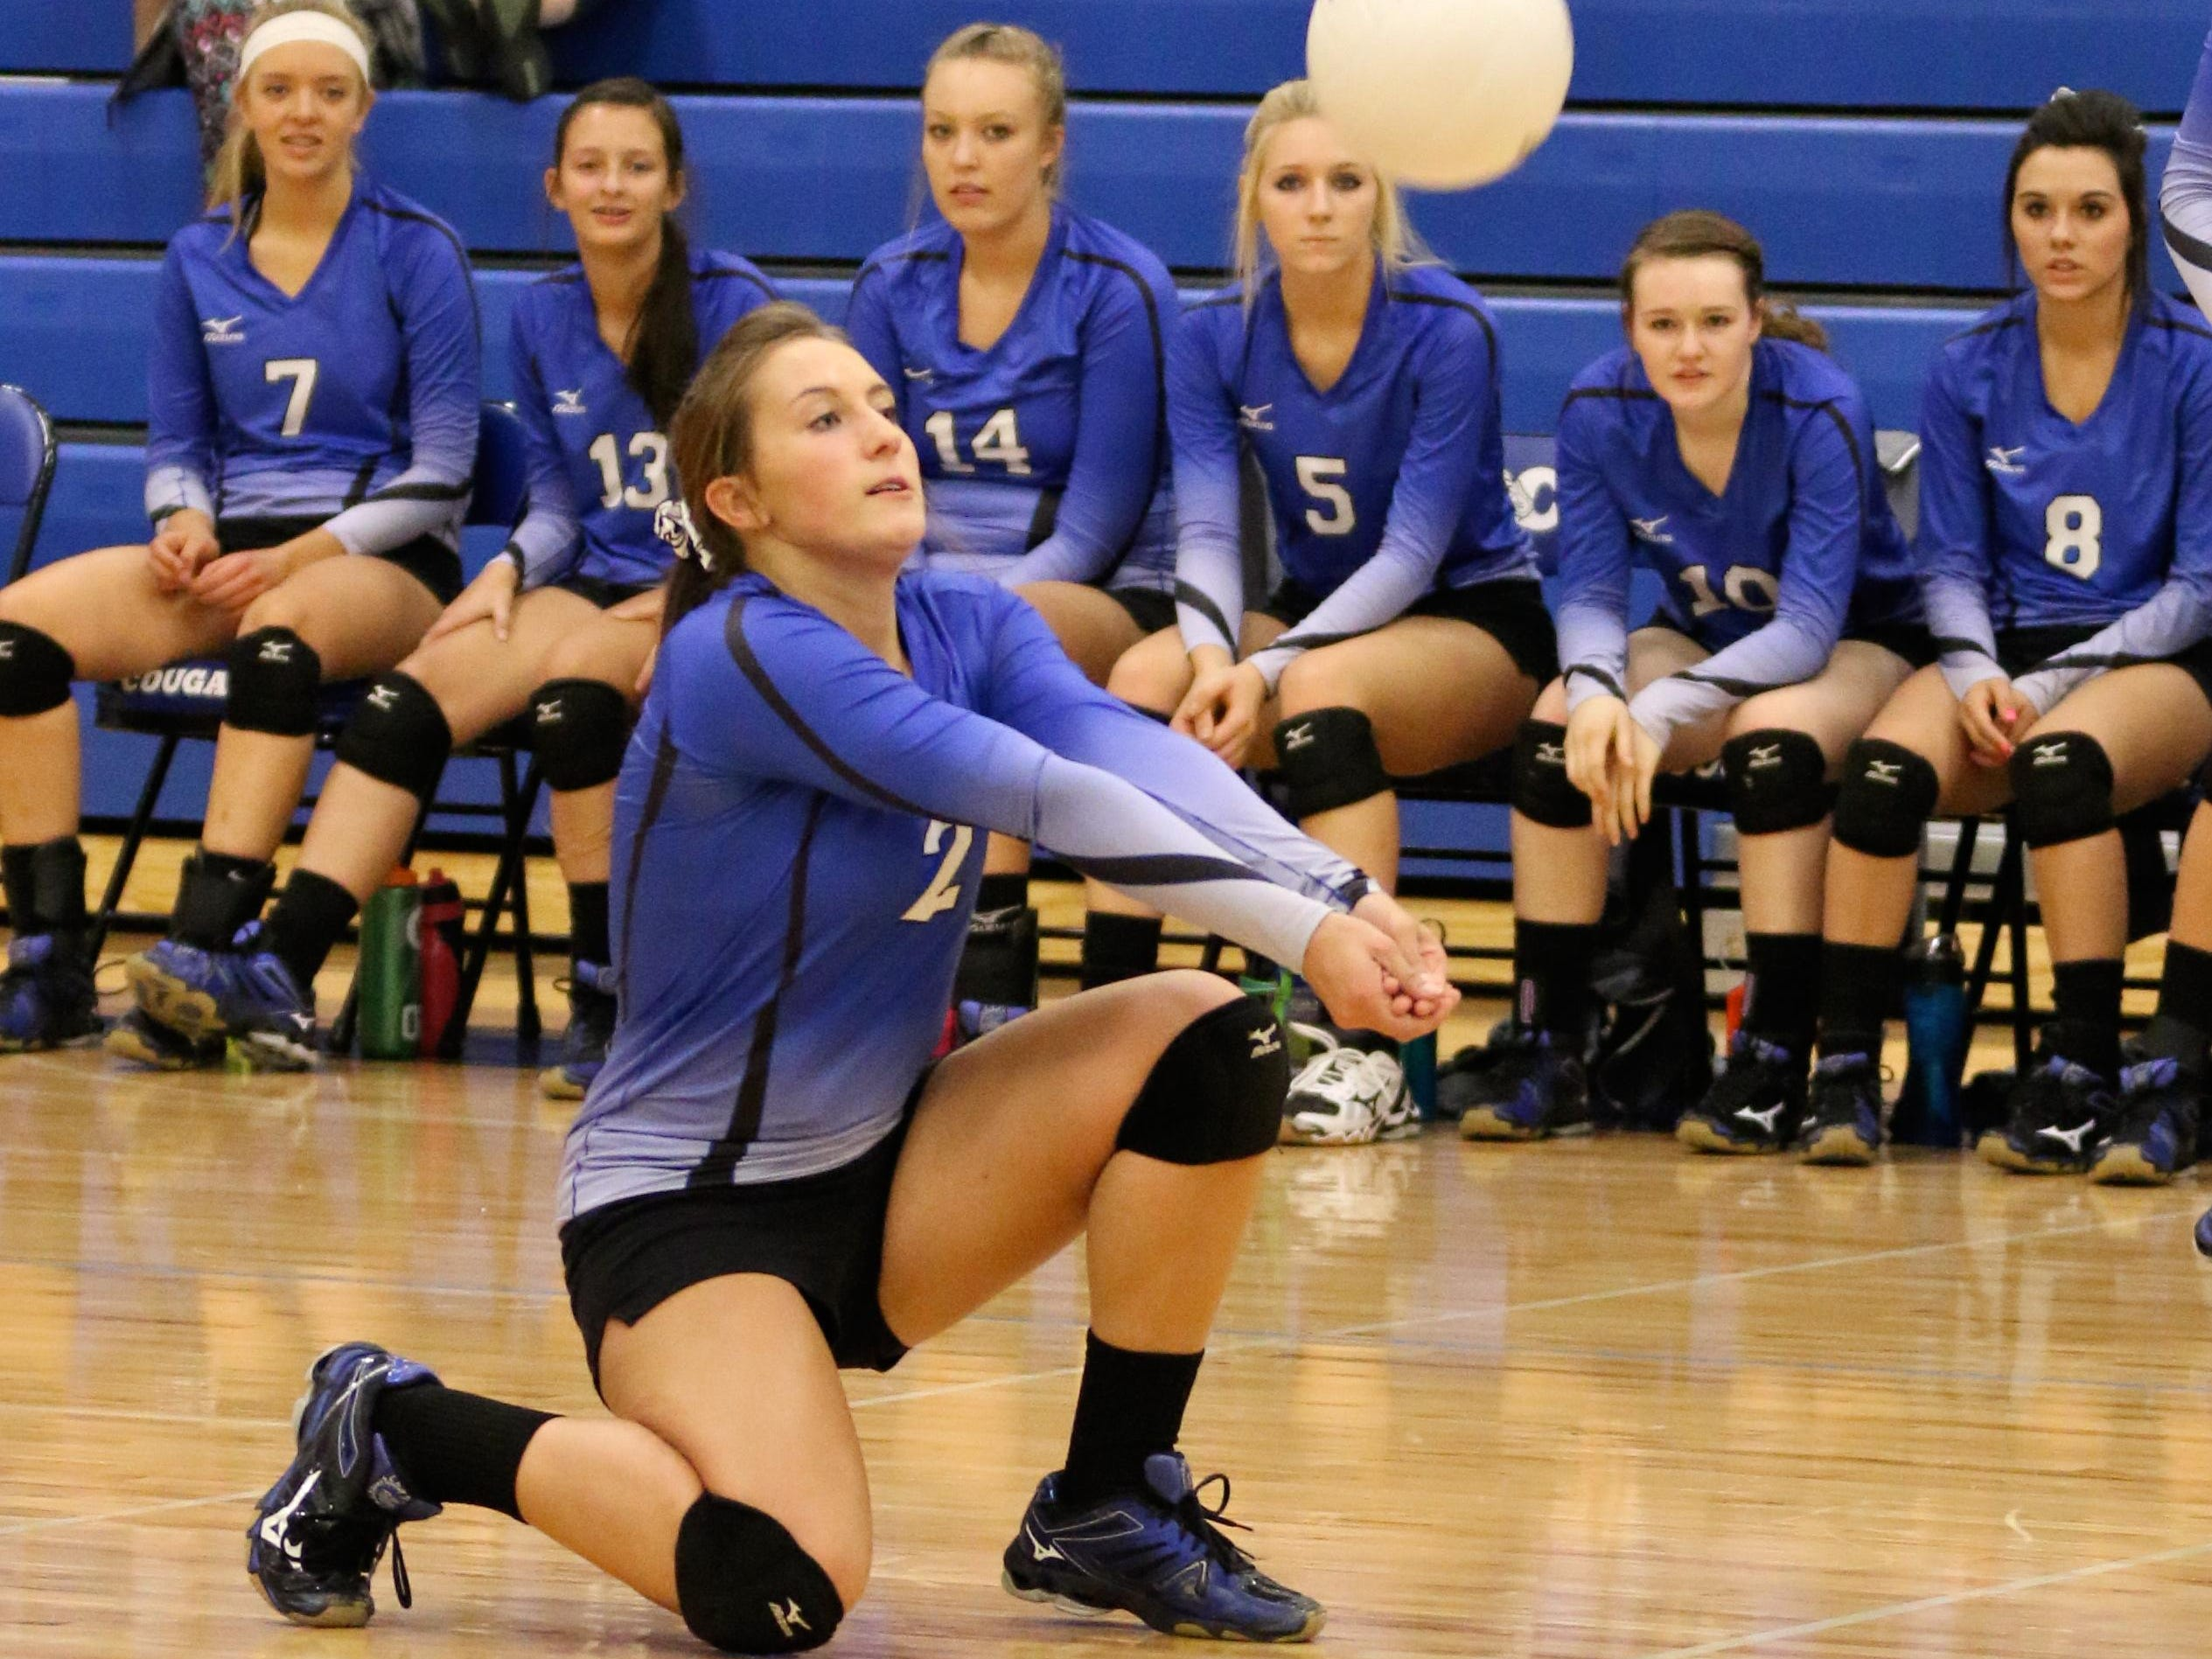 The Resurrection Christian volleyball team is ranked No. 1 in the CHSAANow.com preseason coaches poll in Class 2A.